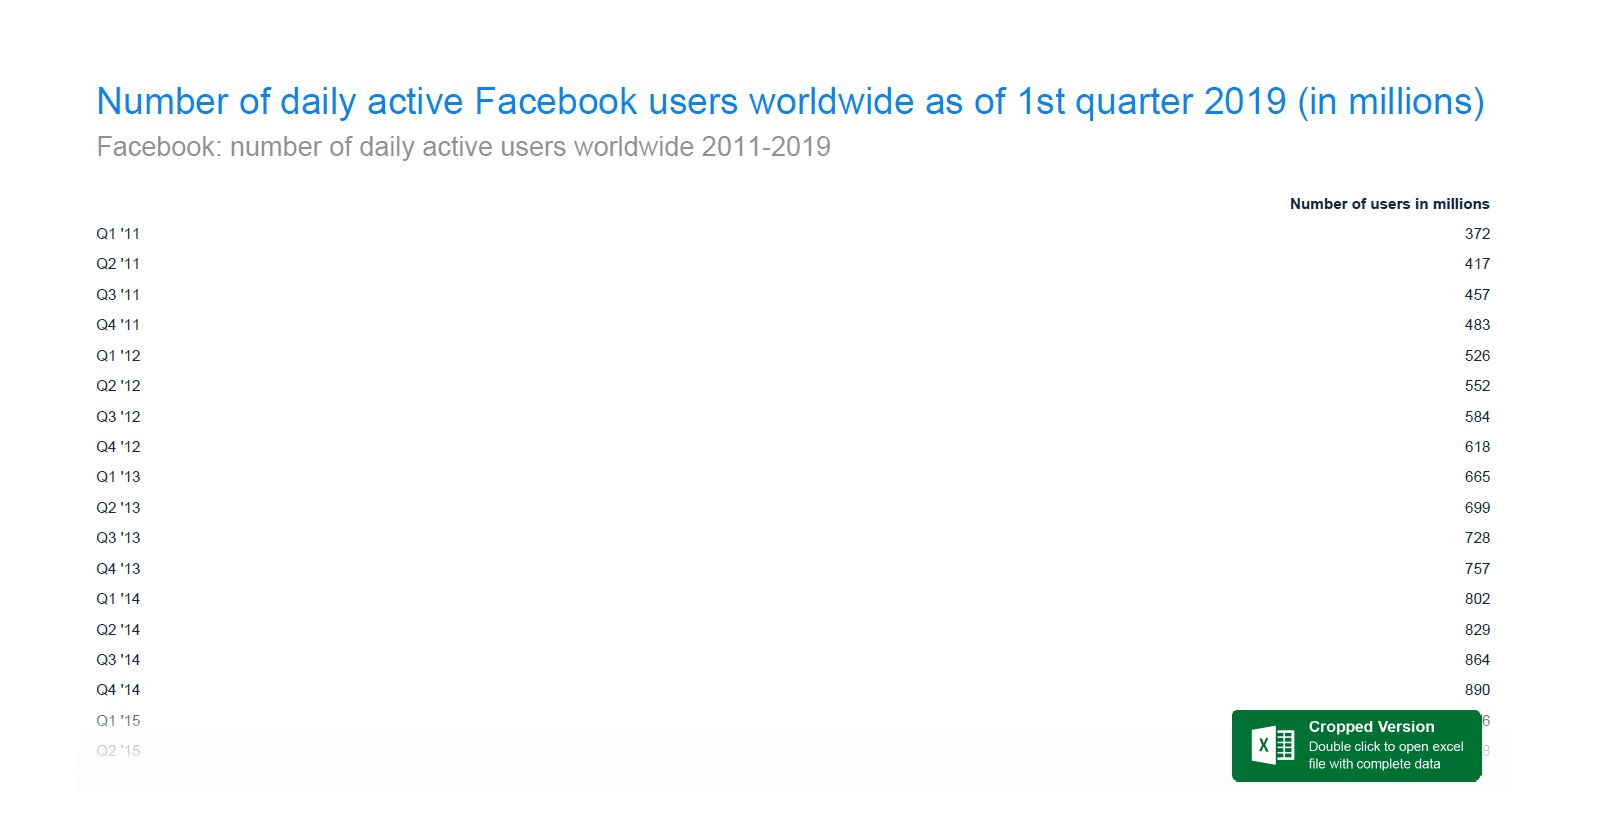 65.8% of Facebook's monthly users use it daily